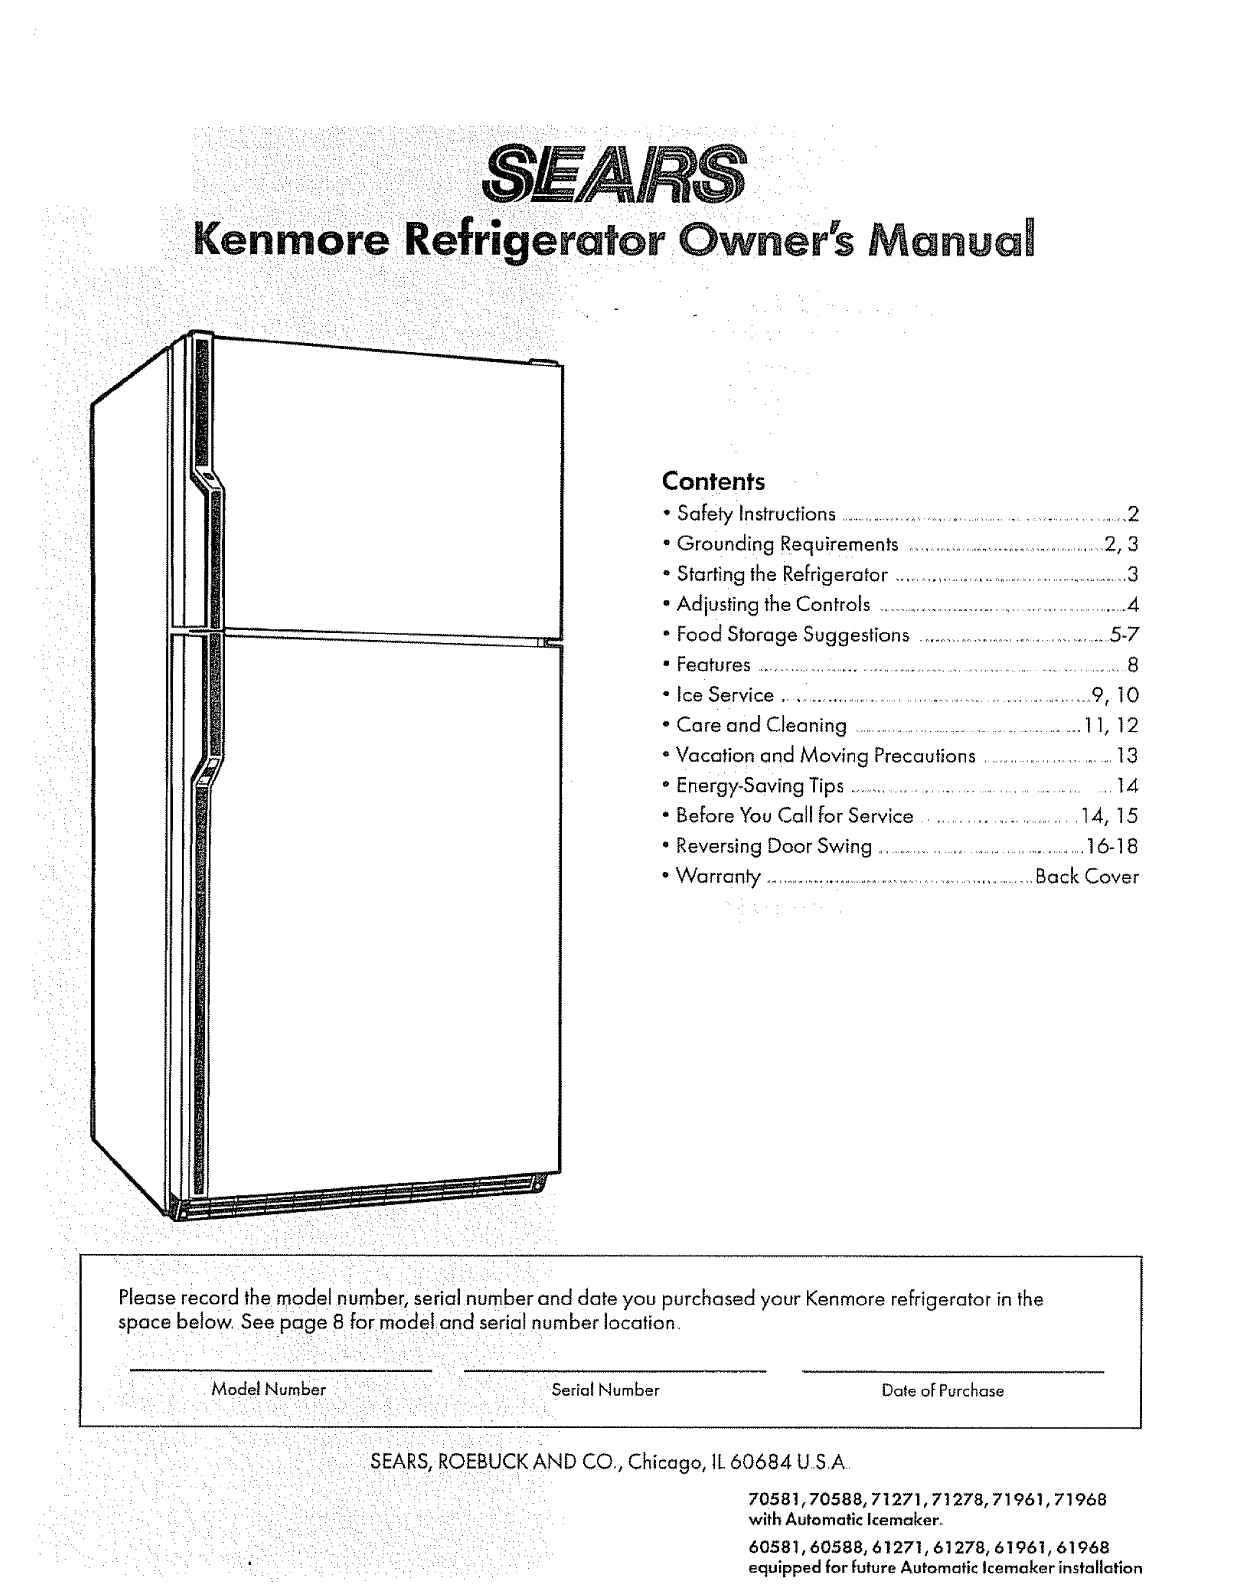 sears refrigerator 61961 user guide manualsonline com rh kitchen manualsonline com Kenmore Refrigerator Model Numbers Kenmore Refrigerator Model Numbers